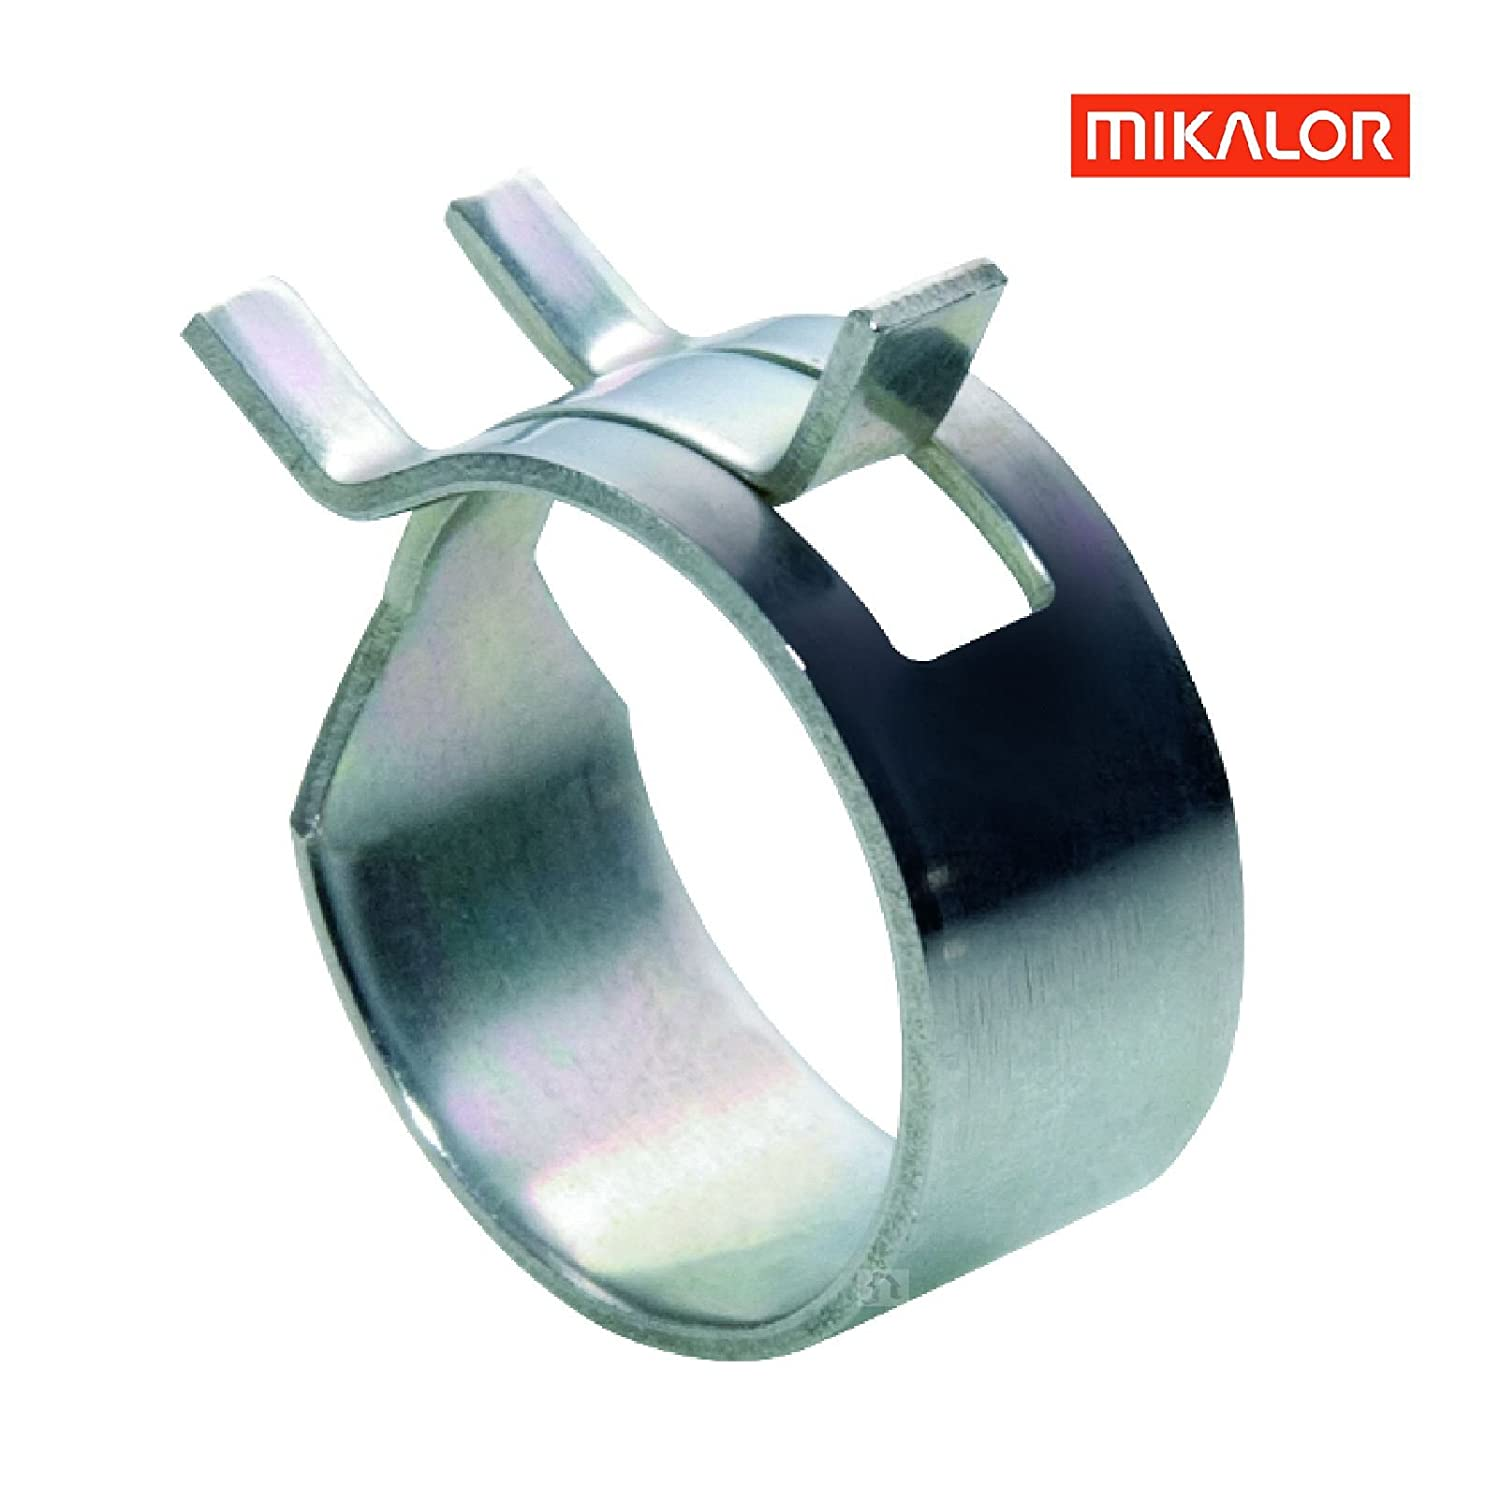 or Zinc Plated Mild Steel Stainless SteelRubber Lined P ClipsMikalor